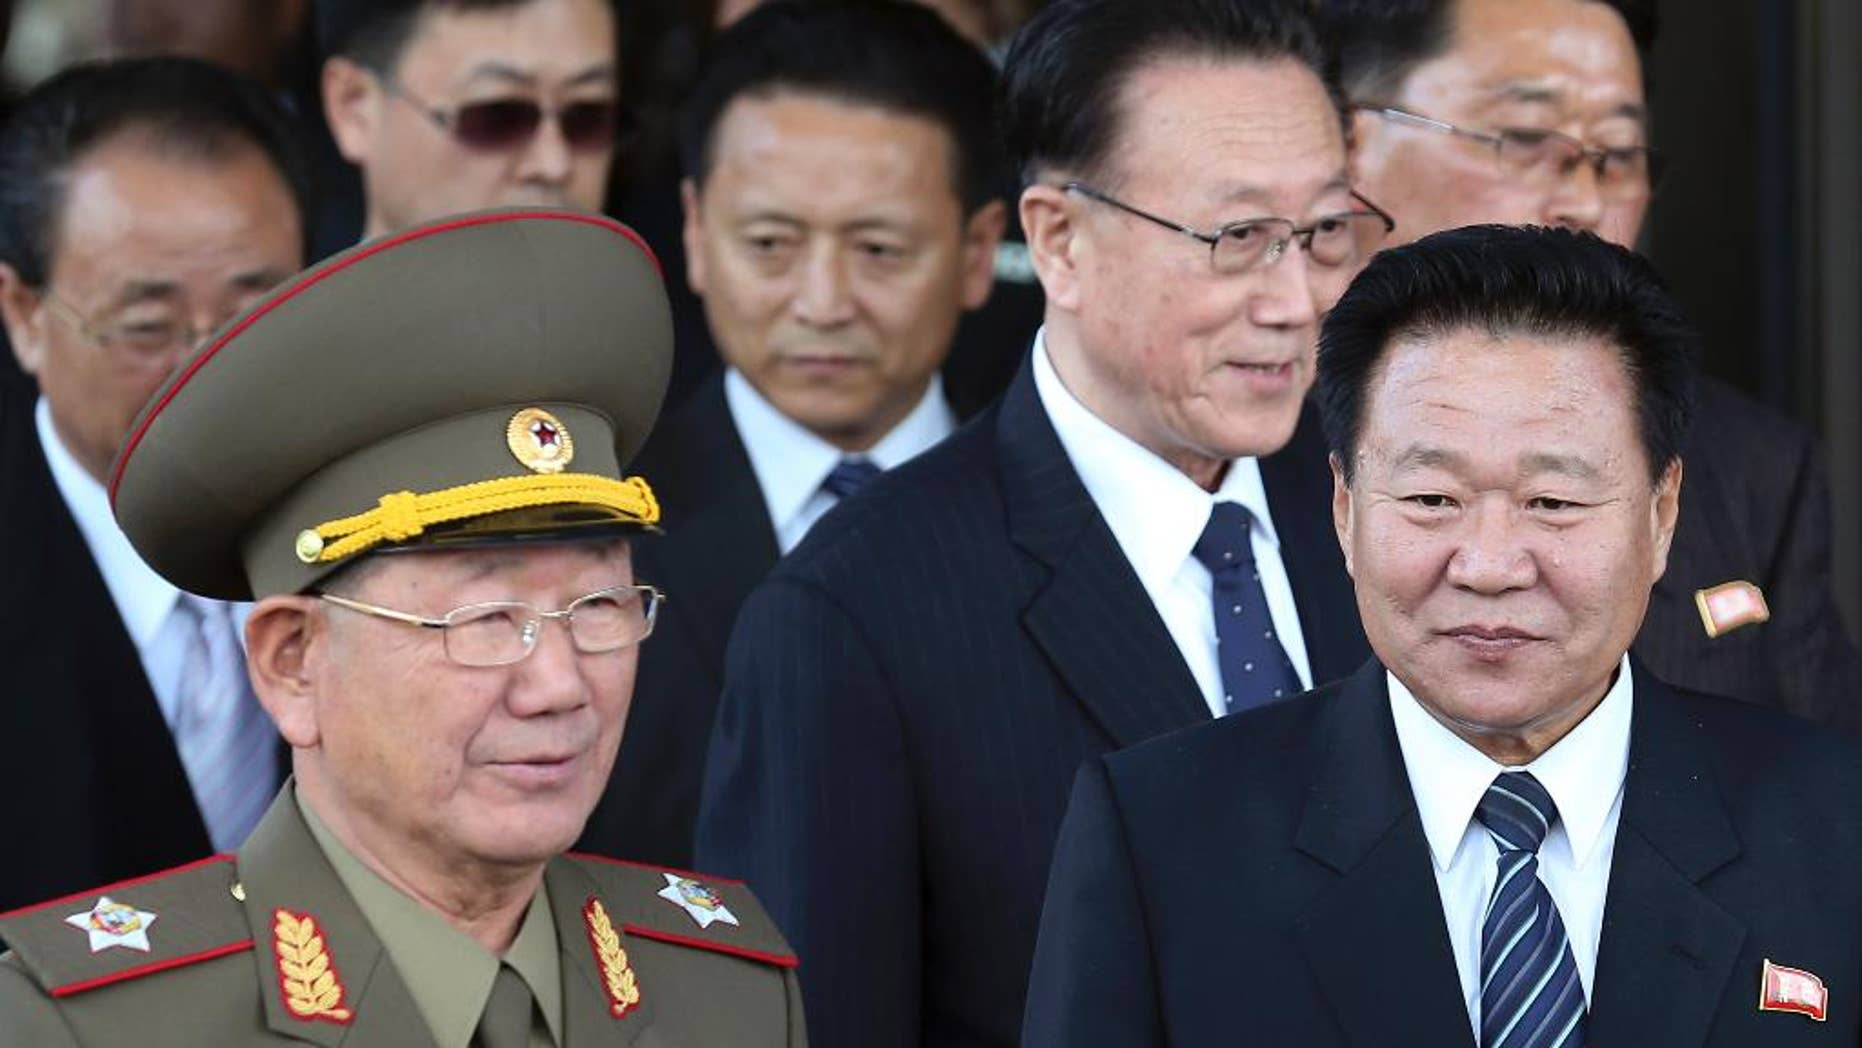 In this Saturday, Oct. 4, 2014 file photo, North Korea's National Defense Commission Vice Chairman Hwang Pyong So, left, and North Korea's ruling Workers Party Secretaries, Choe Ryong Hae, right, and Kim Yang Gon, center right, leave after a meeting with South Korean officials at a hotel in Incheon, South Korea. North Korea leader Kim Jong Un will soon send a special envoy to Russia, Pyongyang's state media reported Friday, in a trip expected to focus on how to boost ties at a time when Pyongyang faces deepening diplomat isolation. The North's Korean Central News Agency made the announcement about Choe 's planned trip but it did not give the timing or the exact purpose of the trip. (AP Photo/Yonhap, Yun Tae-hyun, File) KOREA OUT